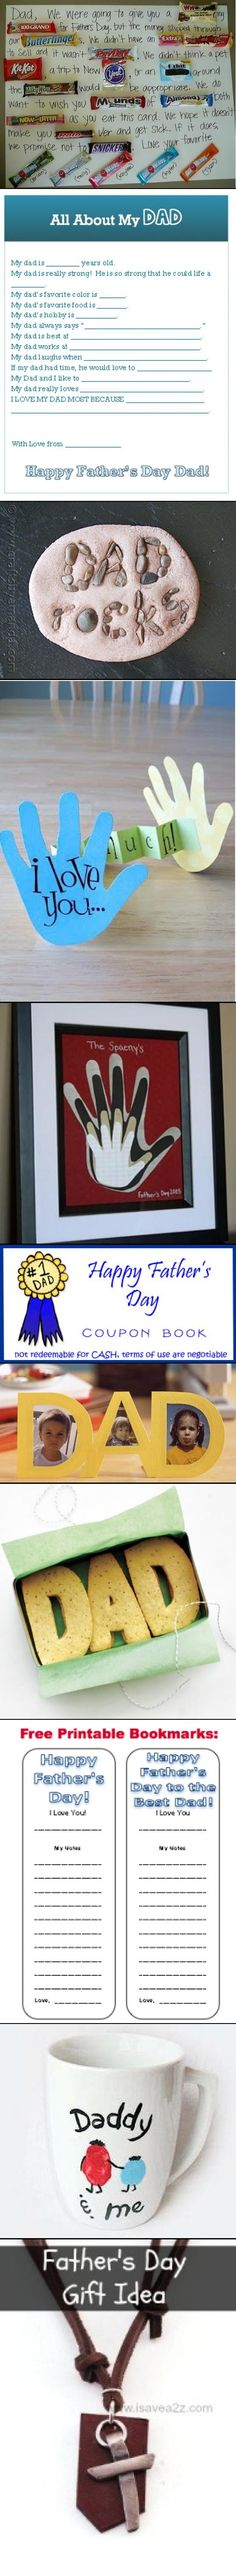 Here's a list of 10 Father's Day Gift Ideas for Kids! Pretty easy to do and budget Friendly too! #kids #FathersDay #Crafts http://www.isavea2z.com/10-fathers-day-gift-ideas-for-kids/